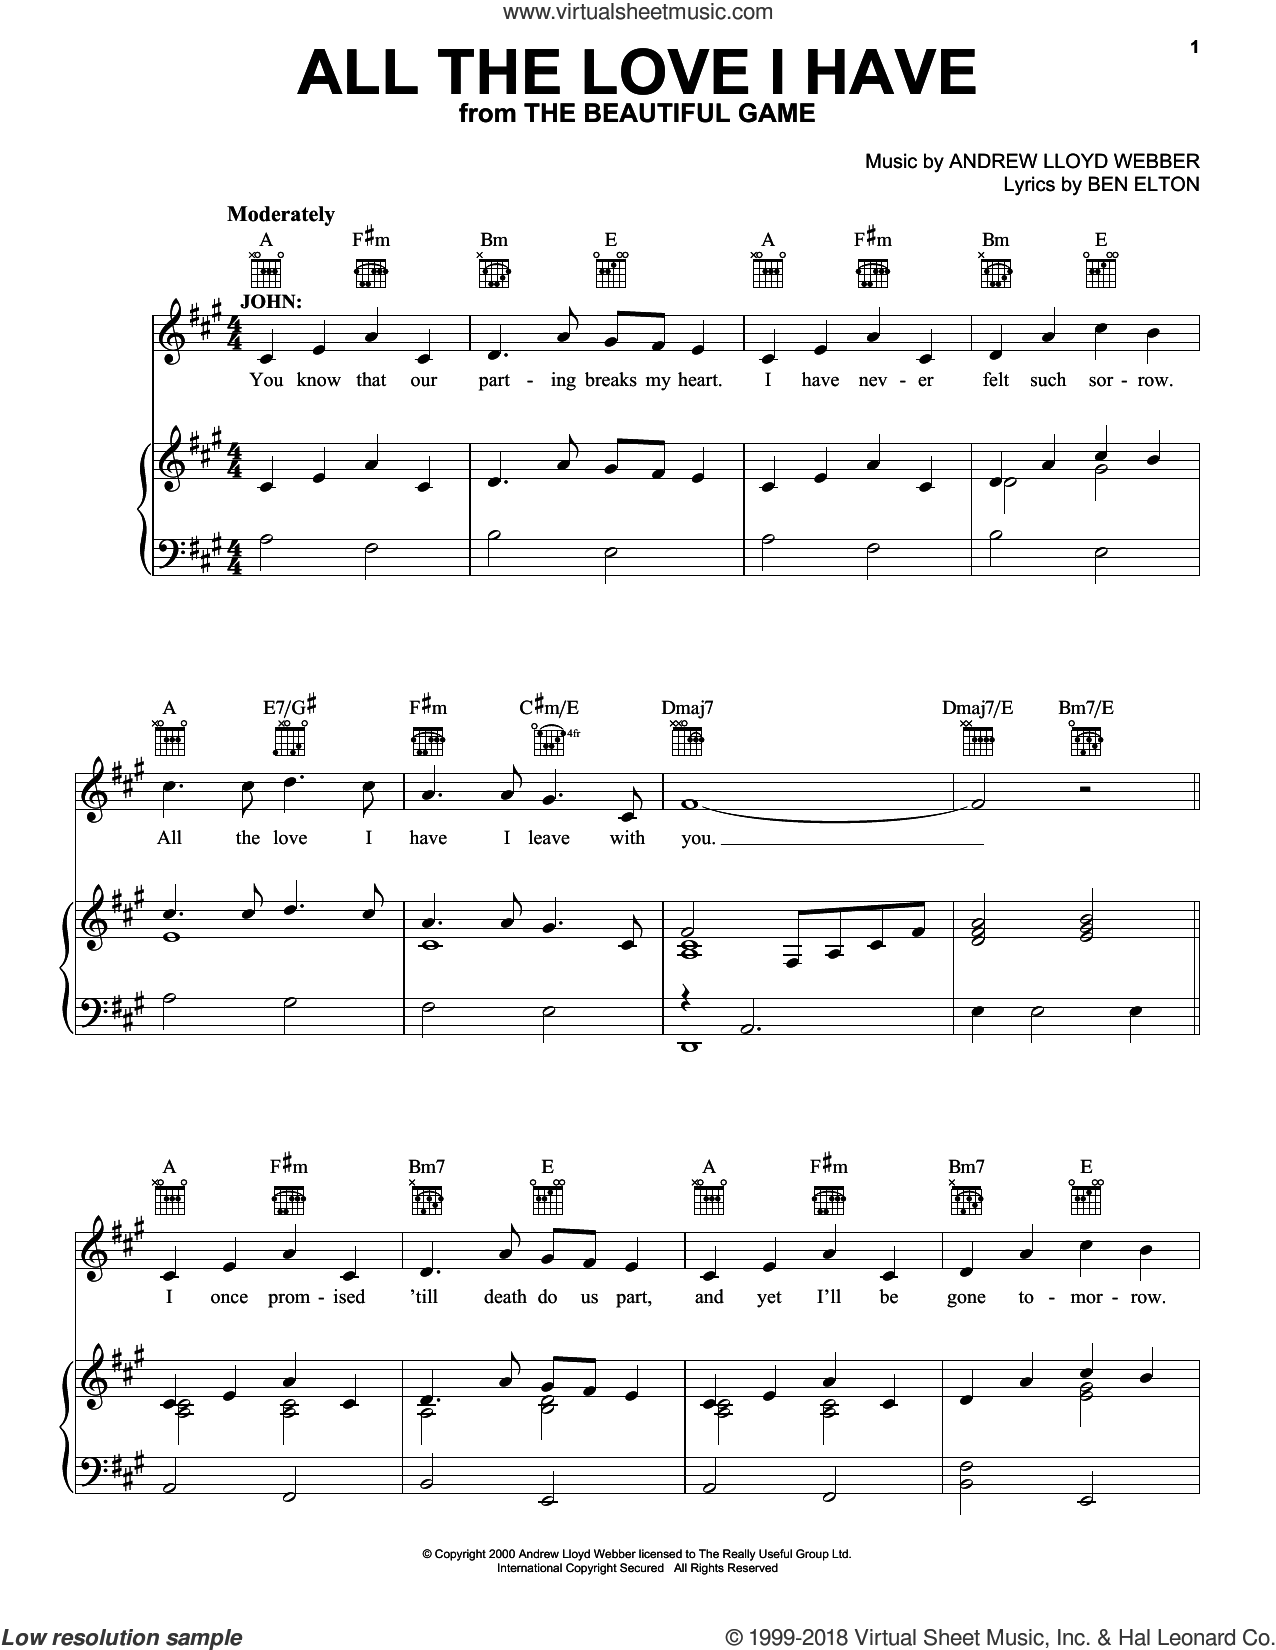 All The Love I Have sheet music for voice, piano or guitar by Andrew Lloyd Webber and Ben Elton, intermediate. Score Image Preview.